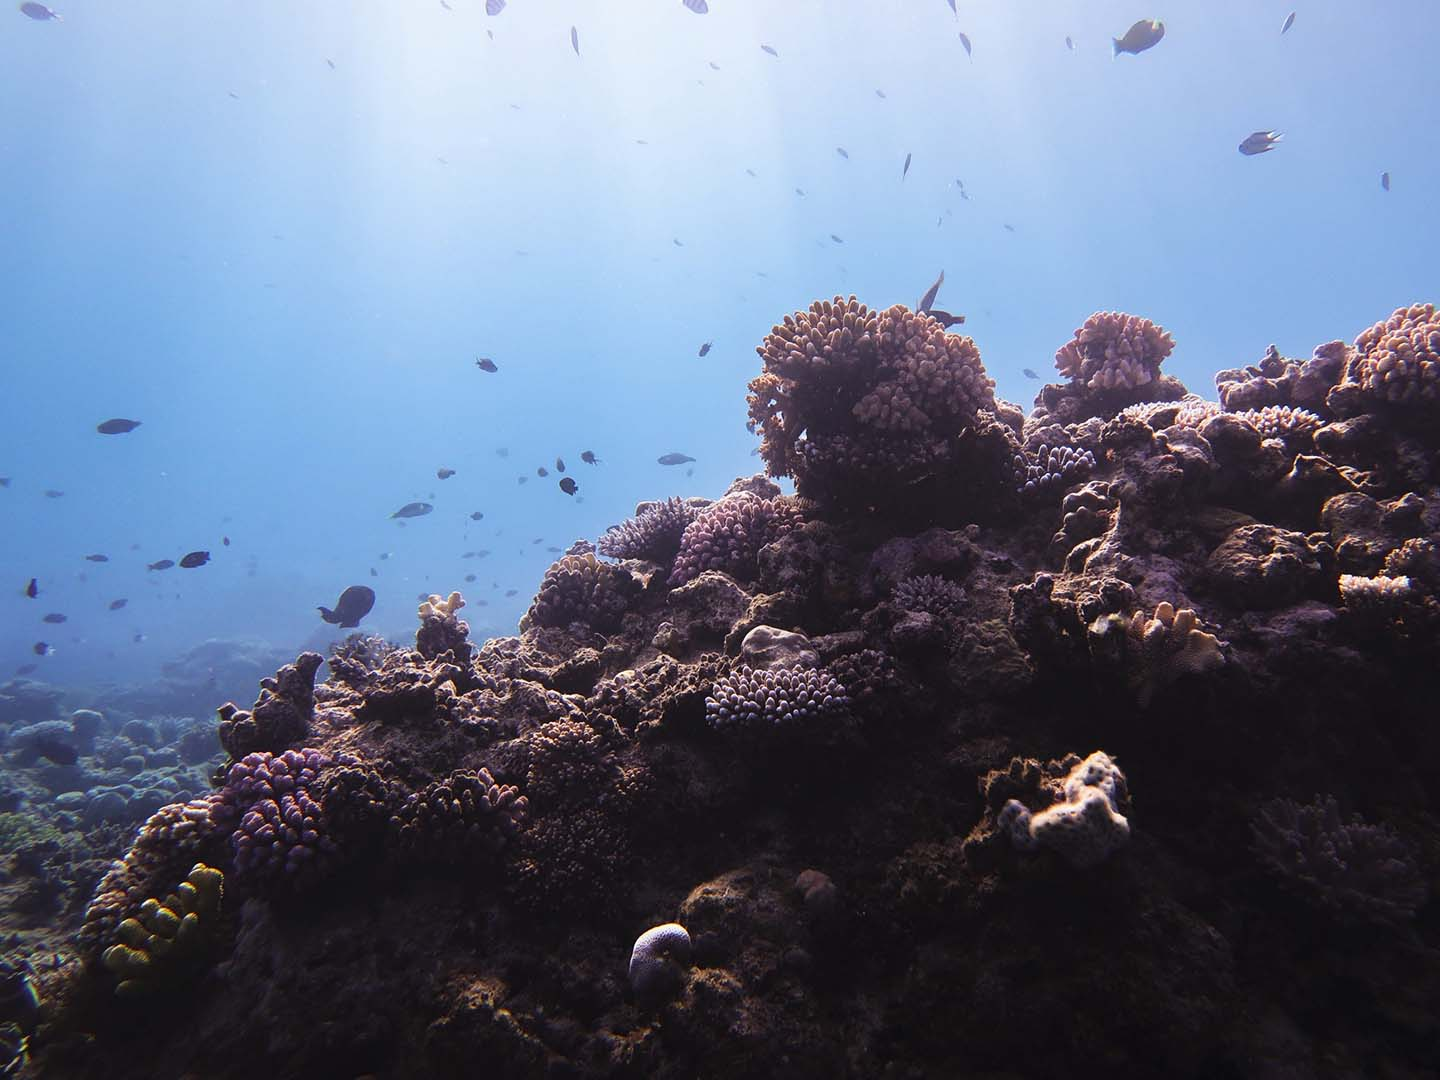 Corals in the Great Barrier Reef